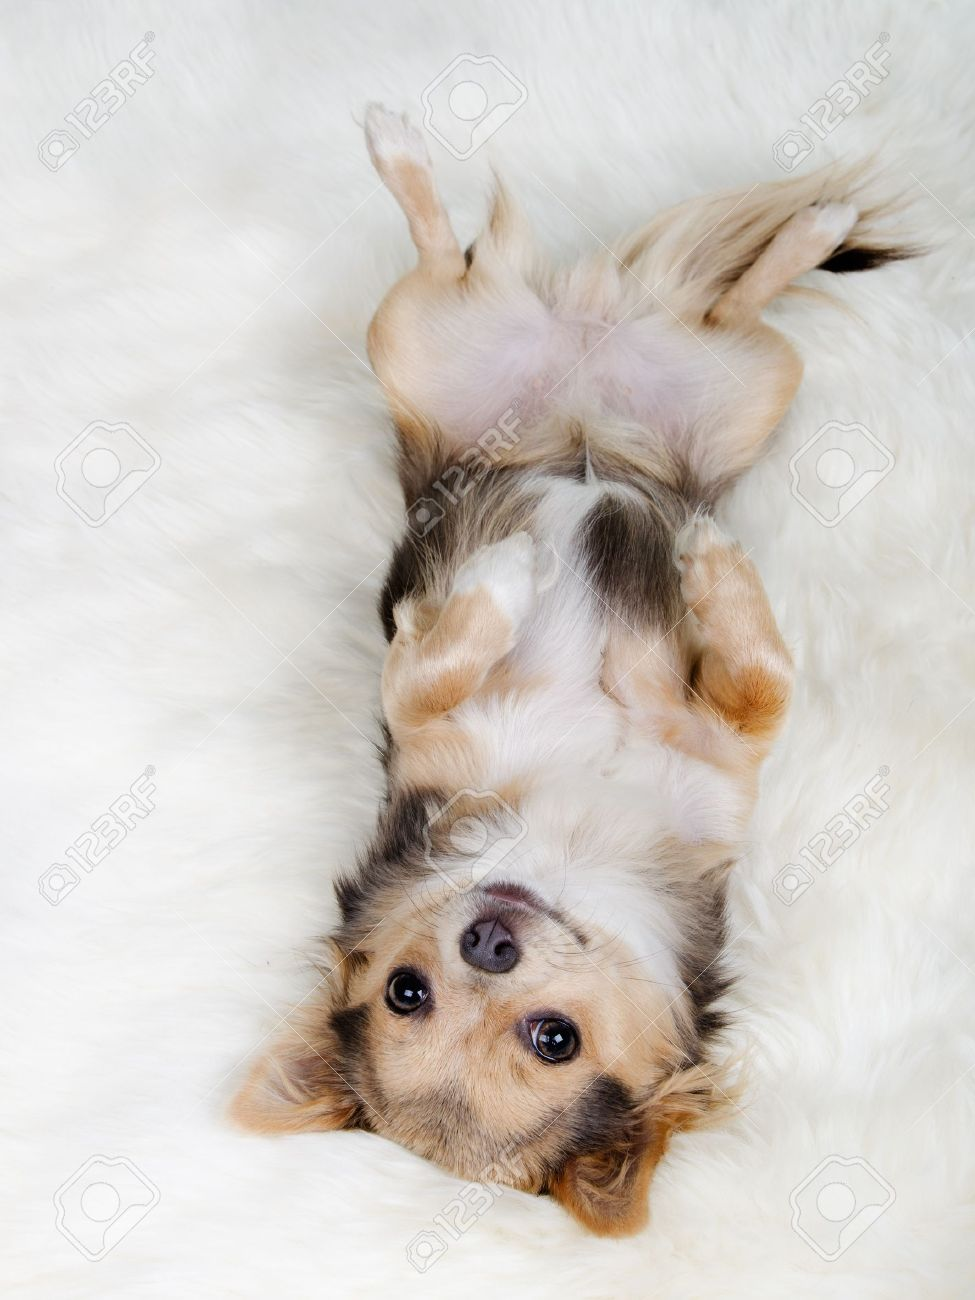 Chihuahua puppy lying on her back on white fluffy fur Stock Photo - 11693914